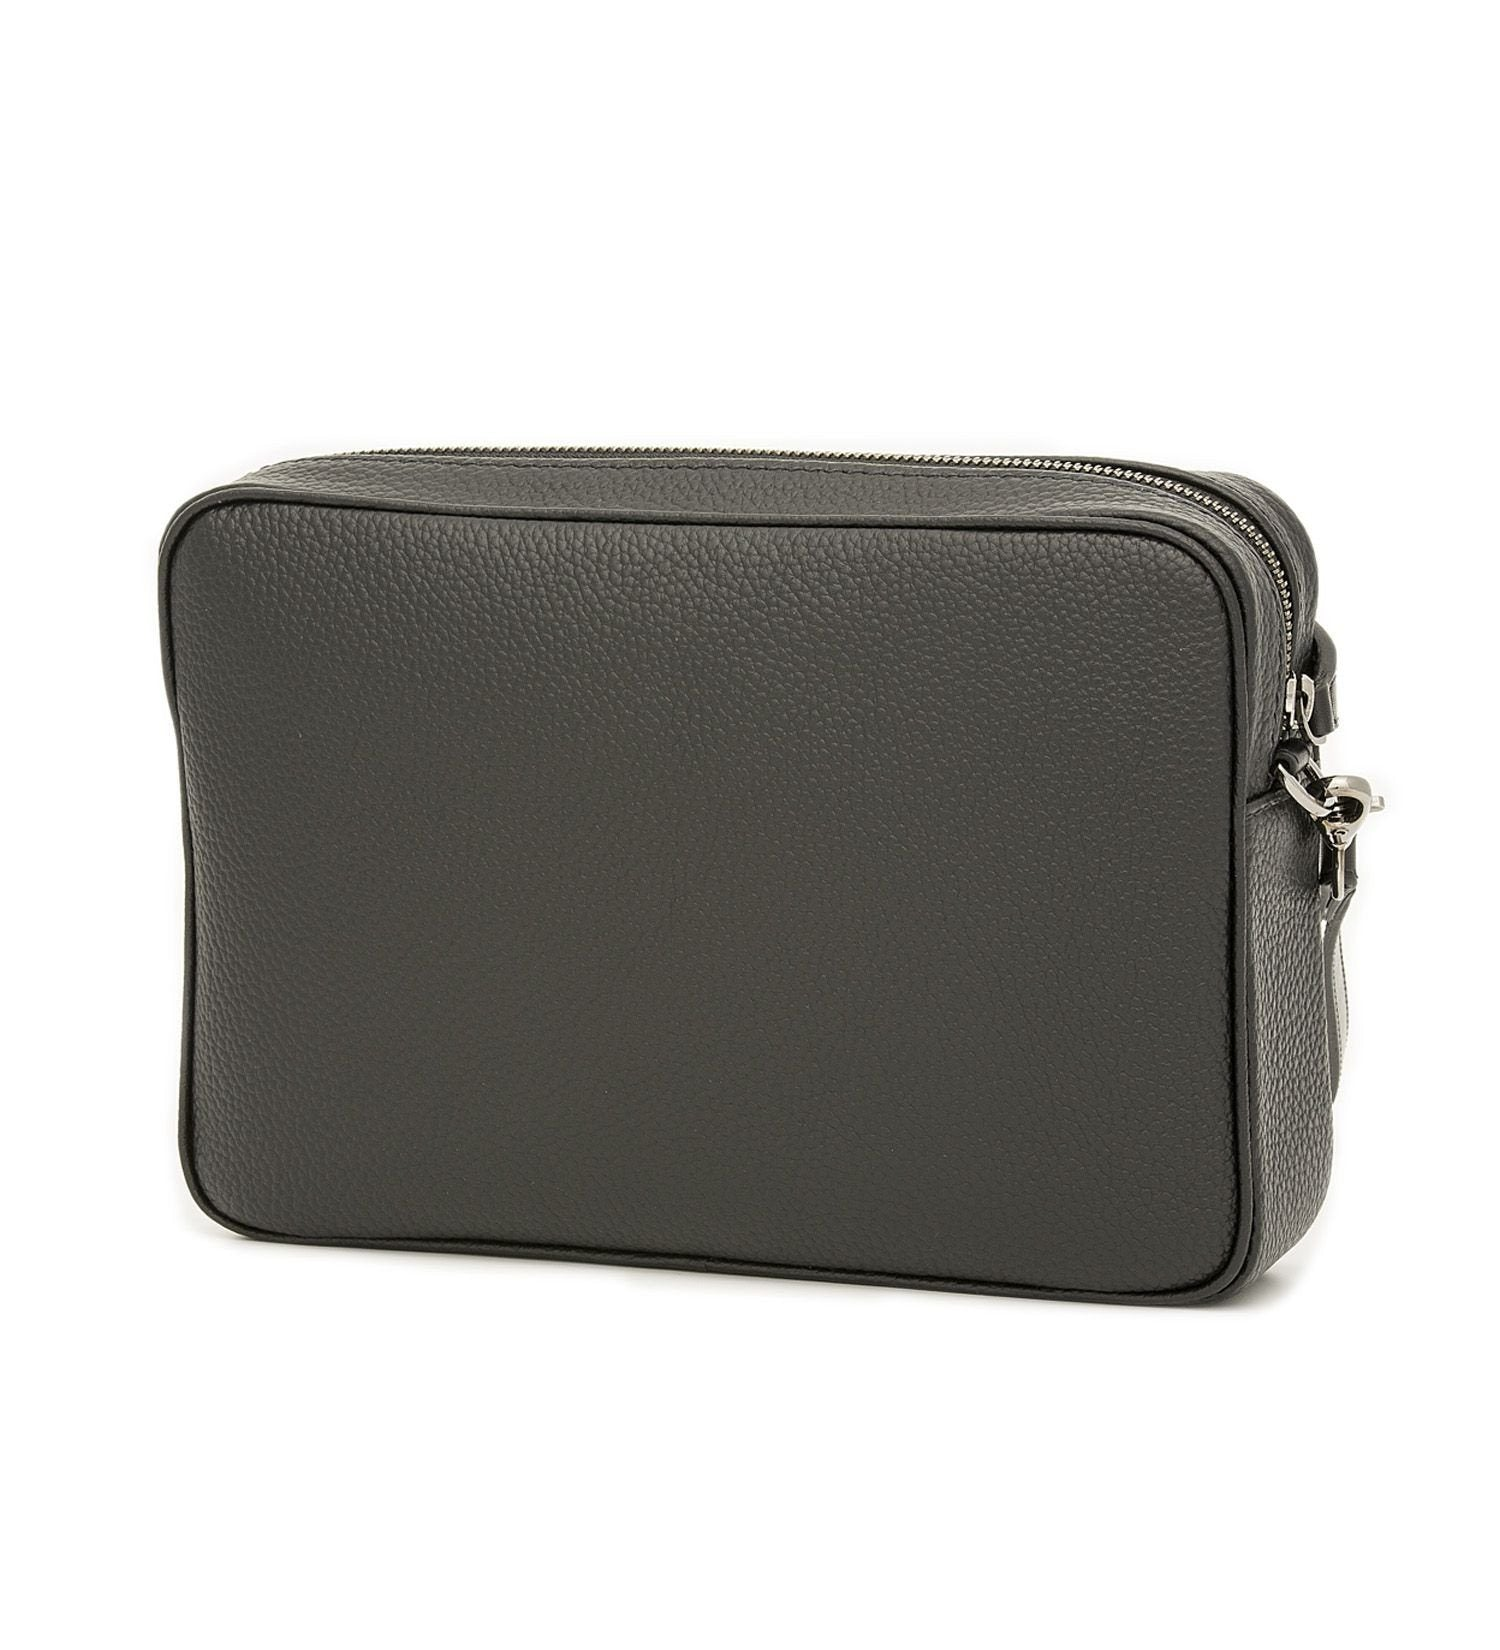 LEATHER CLUTCH BAG,BAGS,A.TESTONI, | GentRow.com